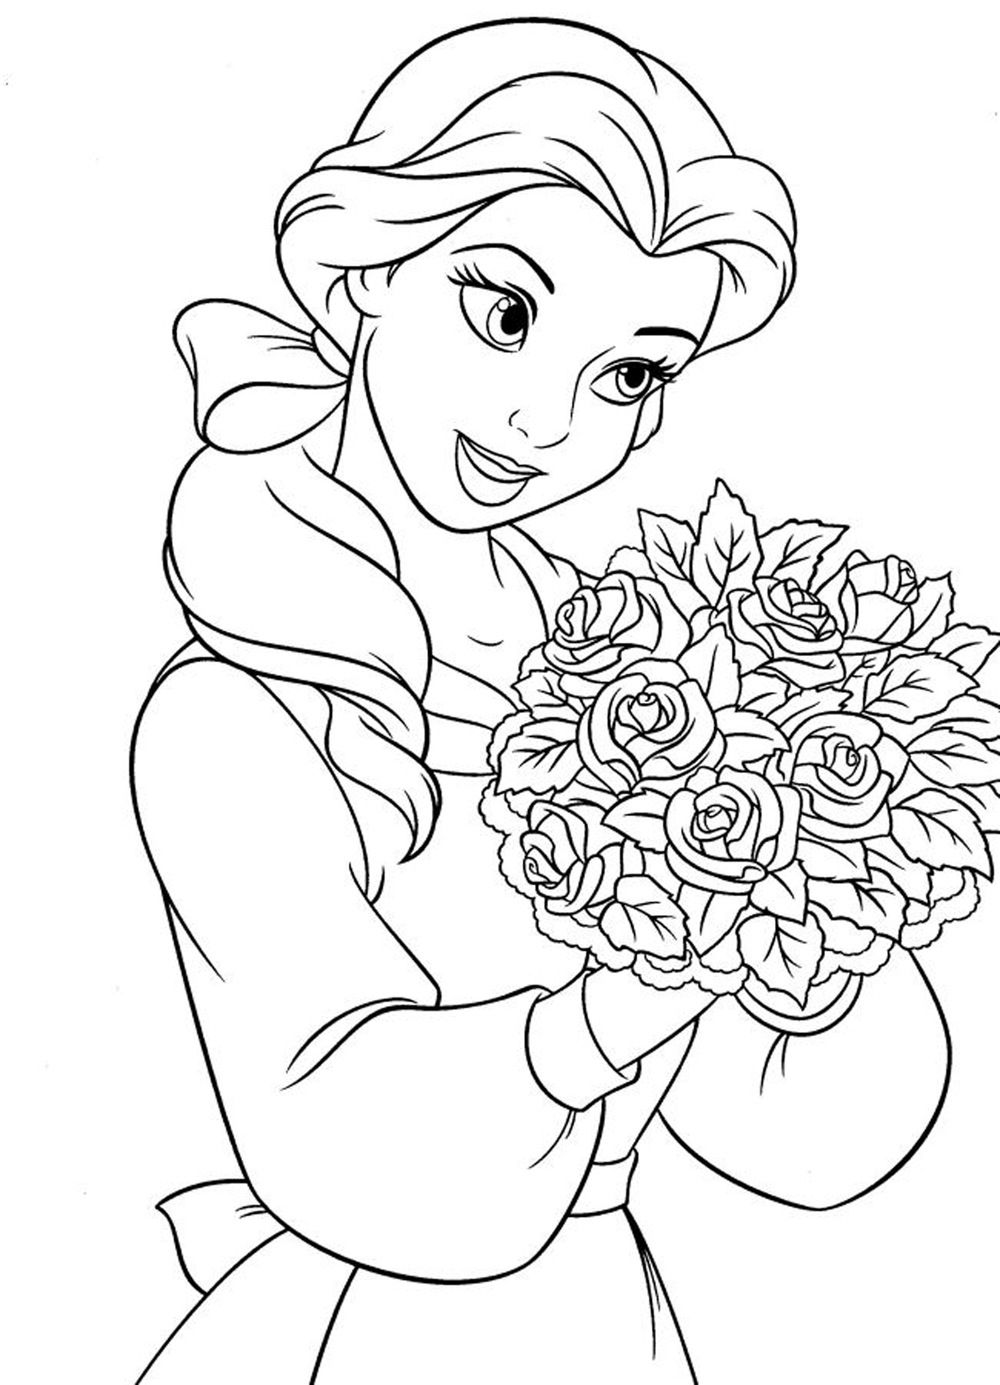 Uncategorized Colouring Pages Of Girls princess coloring pages for girls free large images images